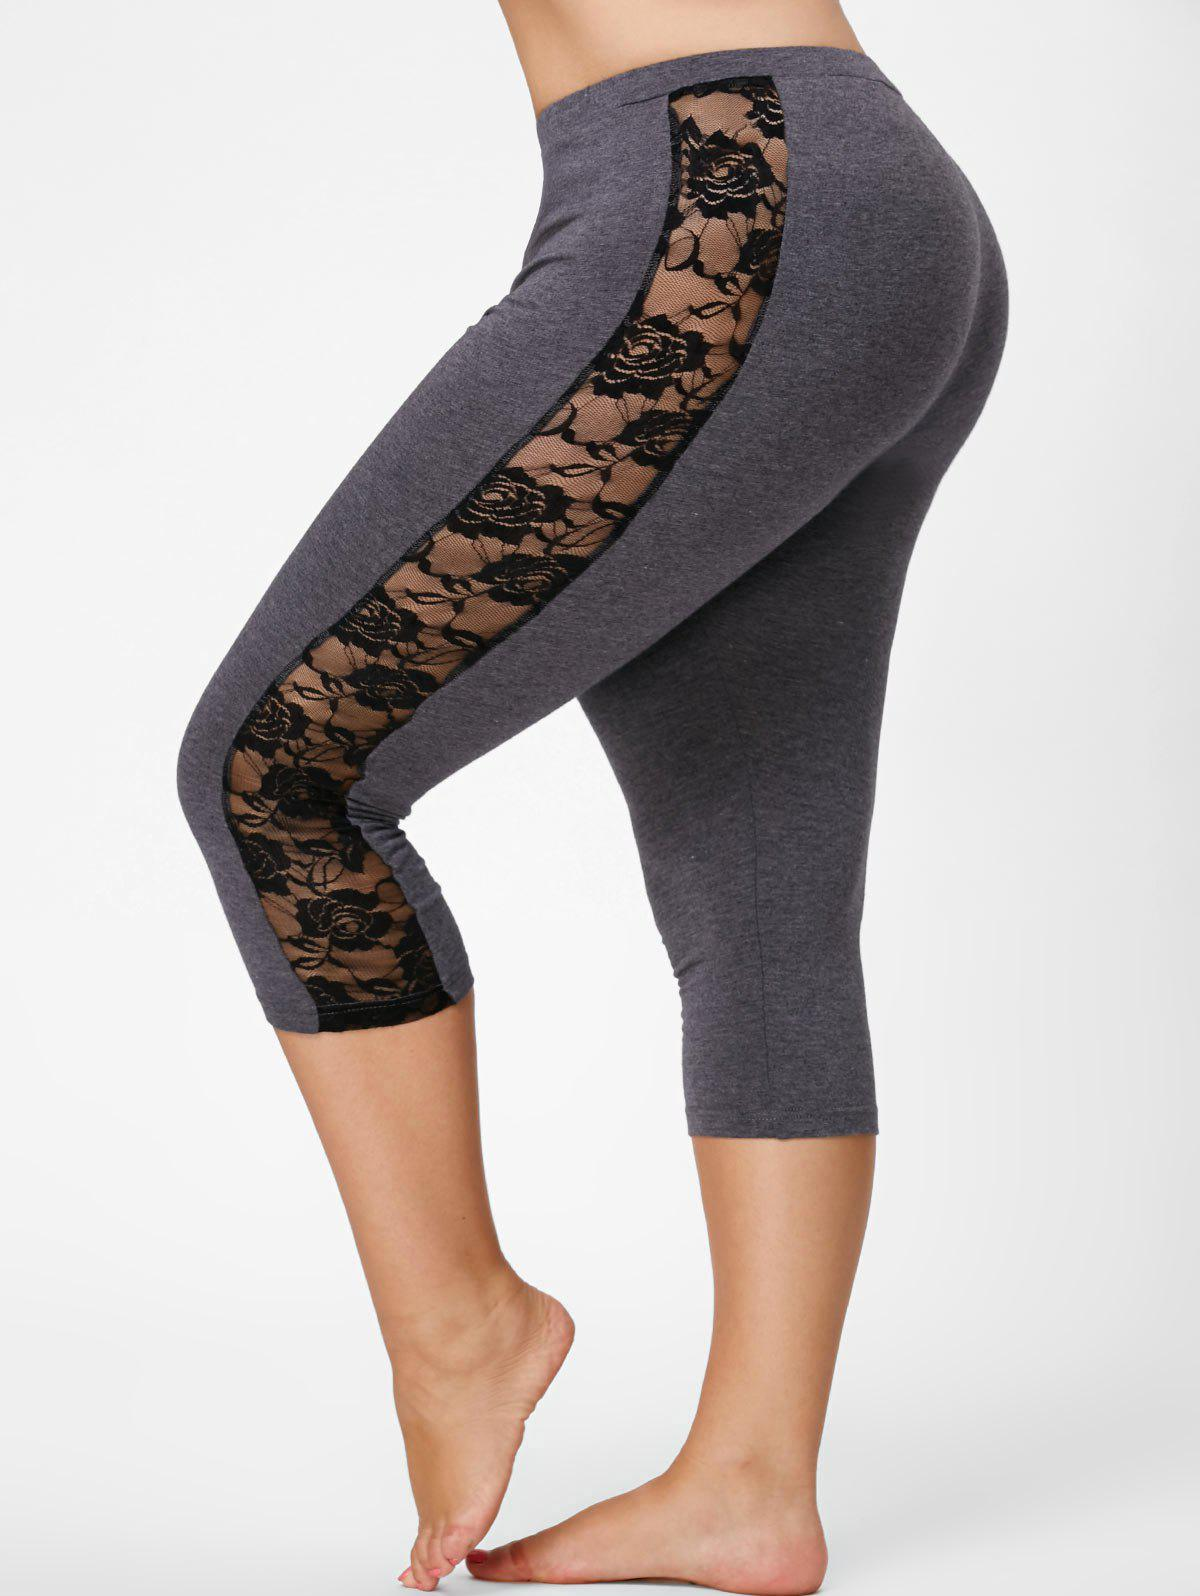 Mesh Panel Lace Plus Size Cropped LeggingsWOMEN<br><br>Size: 2XL; Color: GRAY; Style: Active; Length: Capri; Material: Polyester,Spandex; Fit Type: Skinny; Waist Type: Mid; Closure Type: Elastic Waist; Pattern Type: Solid; Pant Style: Pencil Pants; Weight: 0.2350kg; Package Contents: 1 x Leggings;